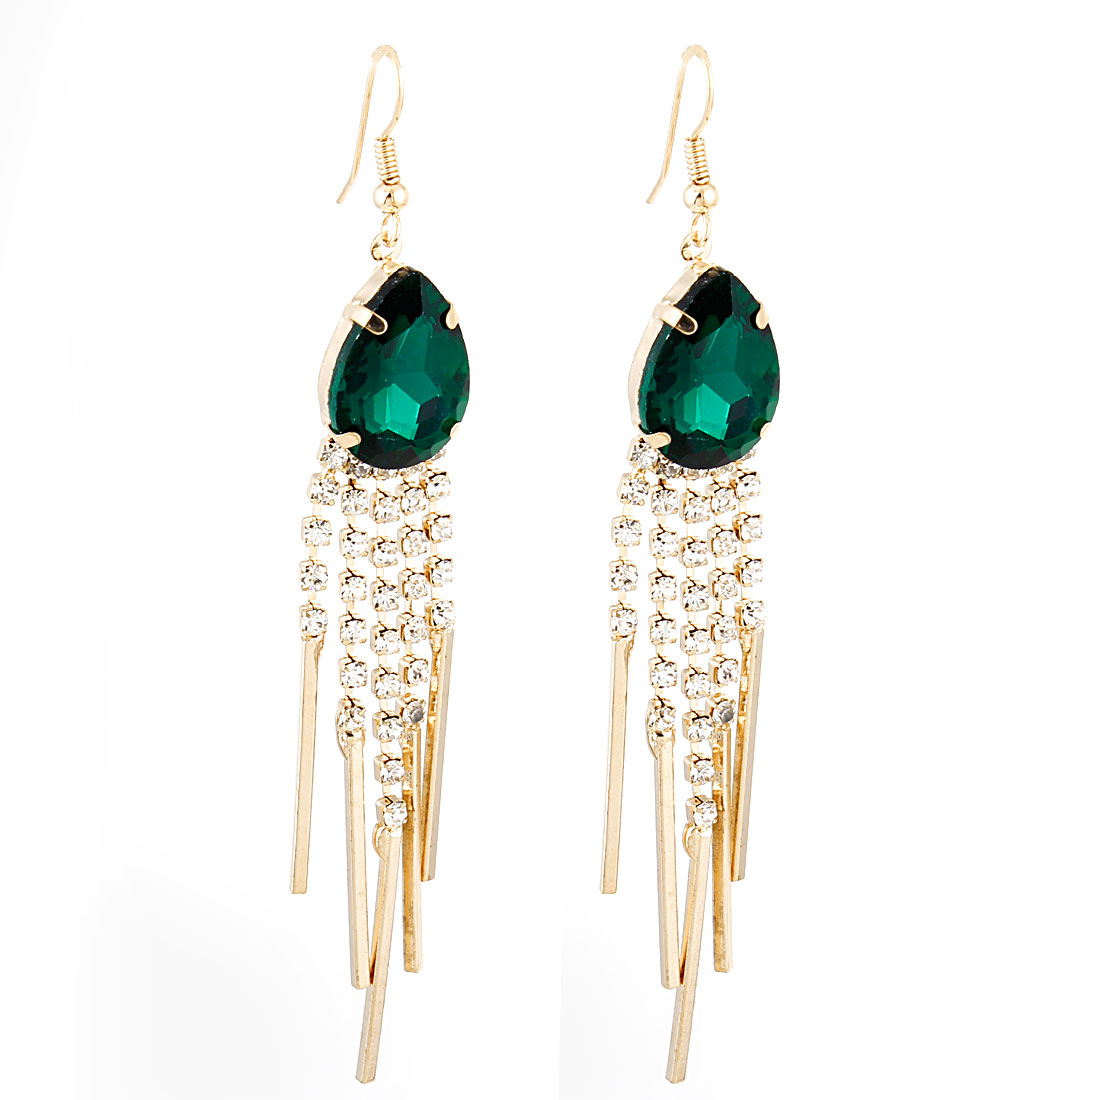 Pair Dark Green Faux Rhinestone Inlaid Dangle Hook Earrings for Ladies